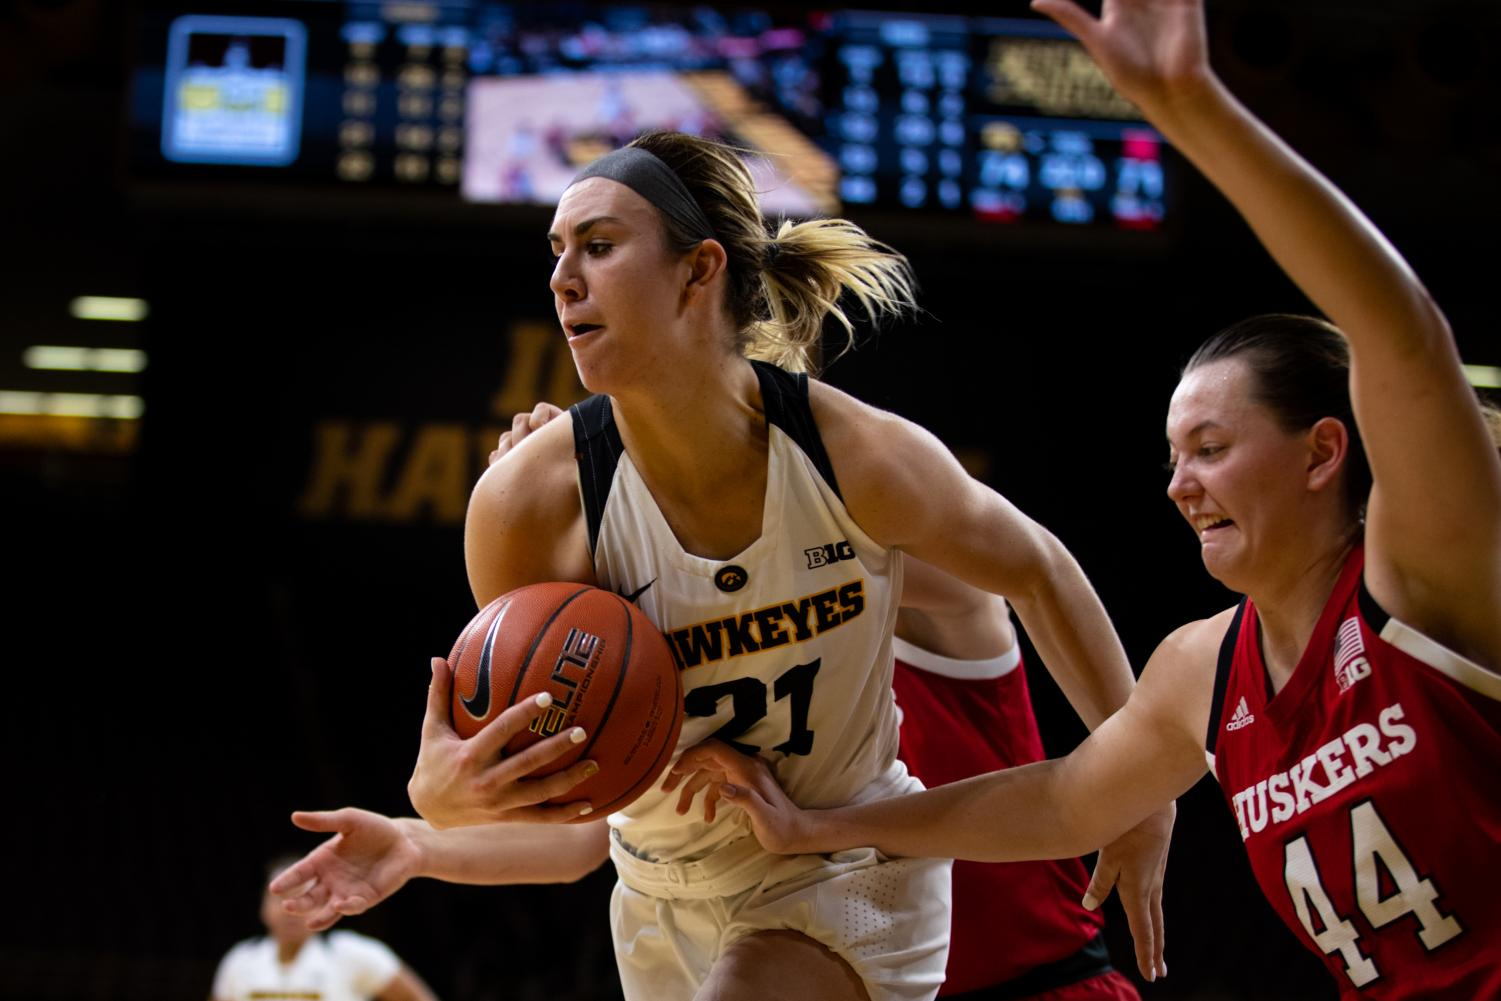 Iowa forward Hannah Stewart #21 rebounds a ball late in the fourth quarter in a women's basketball game against the Nebraska Huskers at Carver-Hawkeye Arena on Thursaday January 3, 2018. The Hawkeyes beat the Huskers, 77-71. (Roman Slabach/The Daily Iowan)